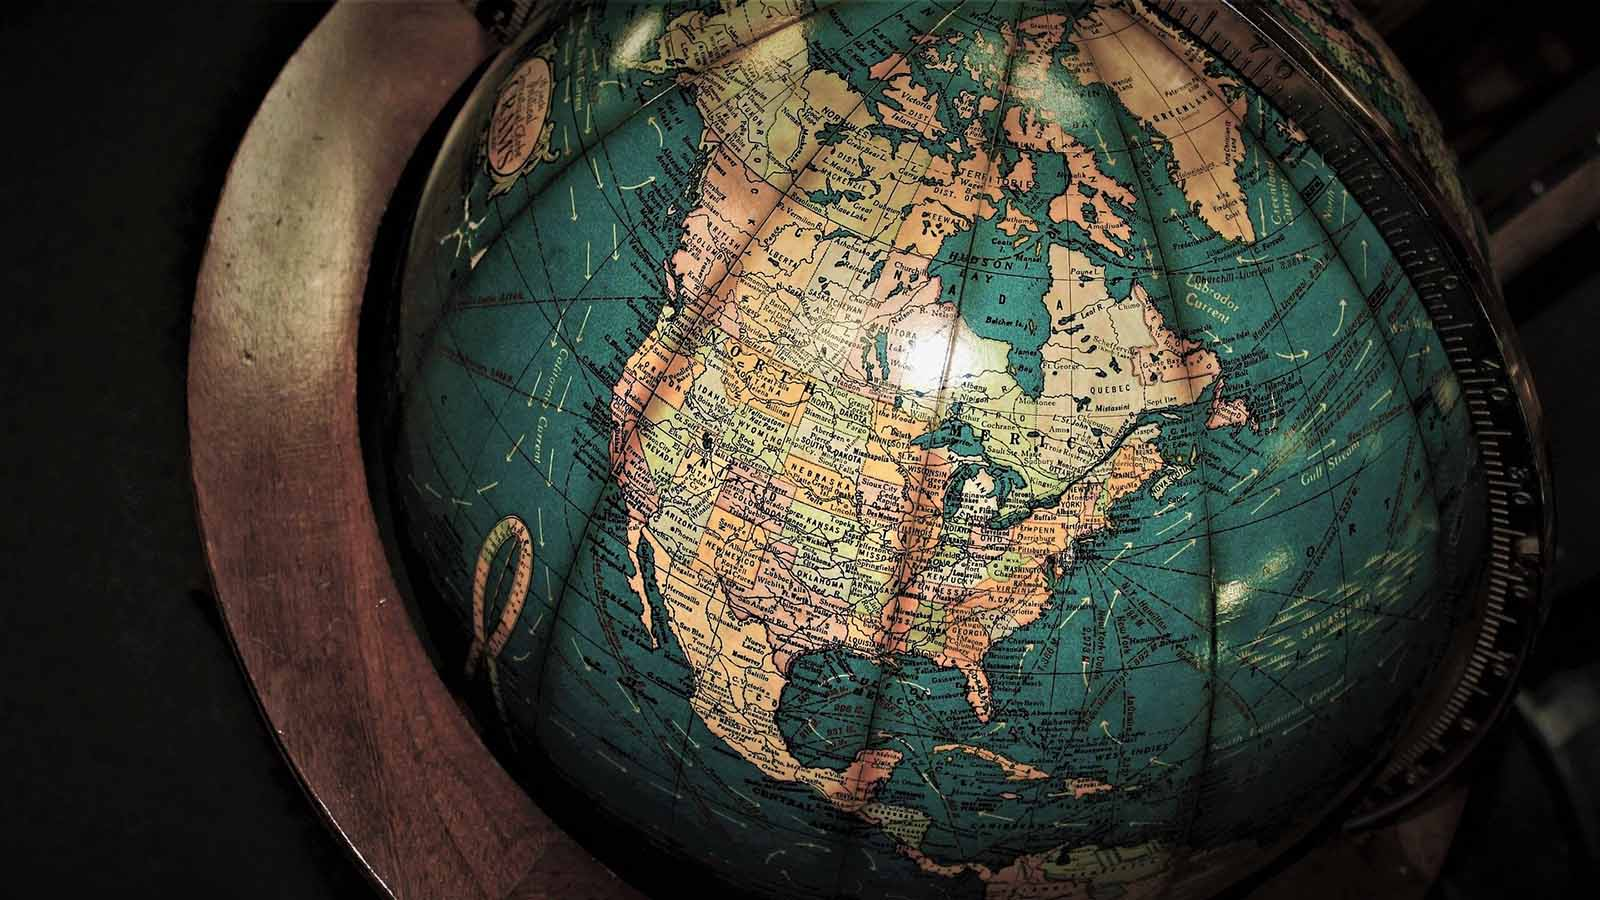 Globe focused on map of North America.